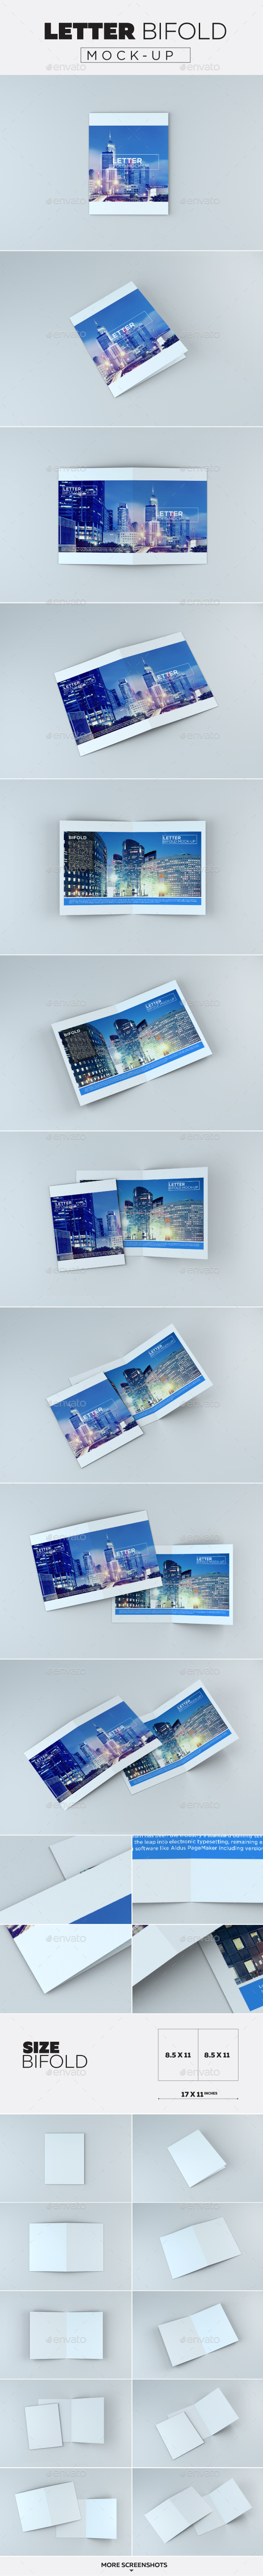 Letter Bifold Mock-Up - Product Mock-Ups Graphics